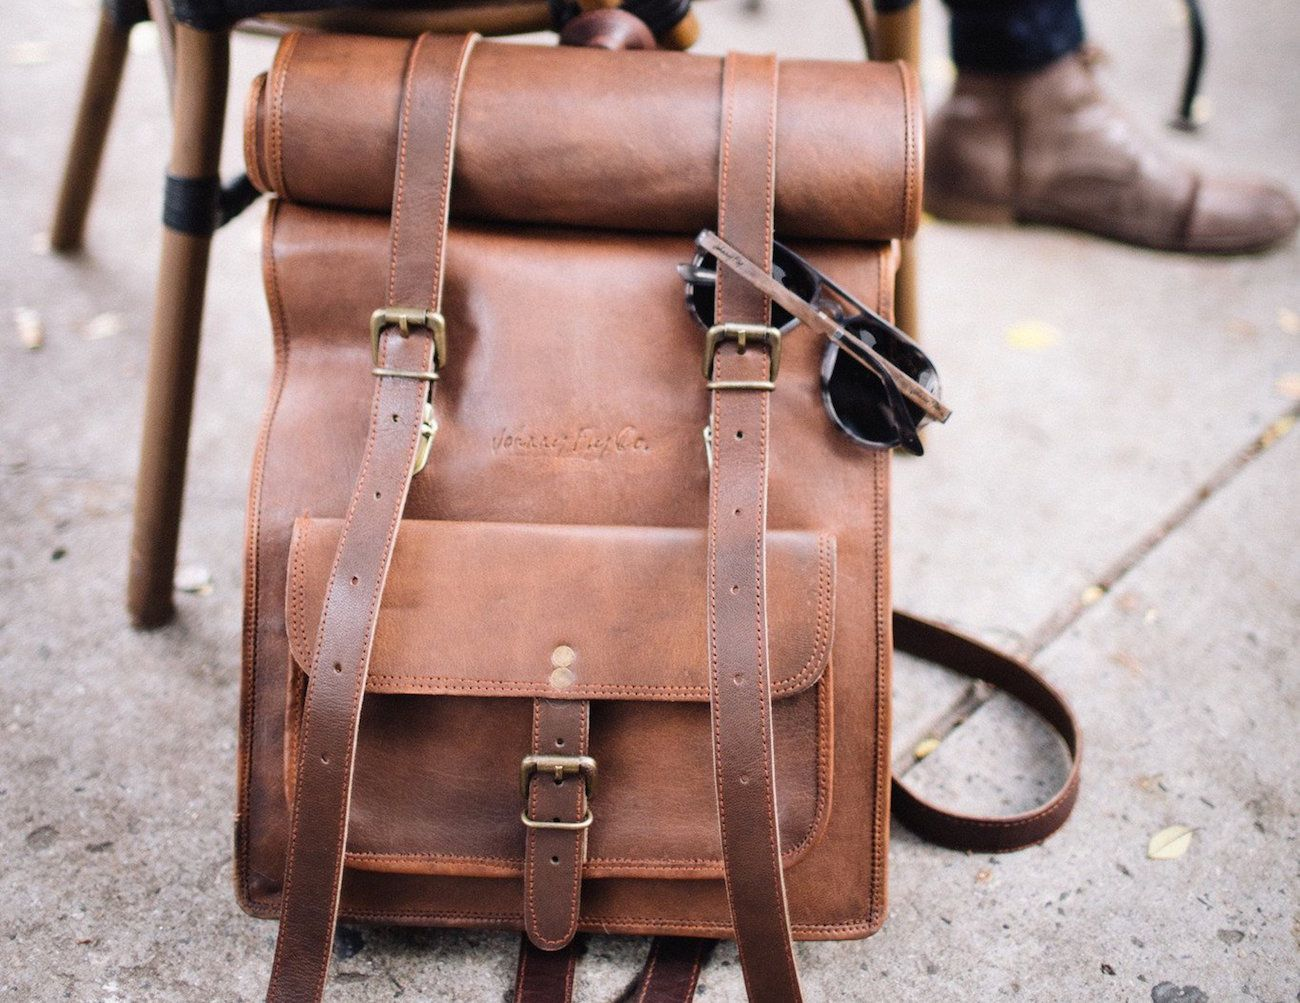 Leather Rolltop Backpack by Johnny Fly Co | Trips, The office and ...